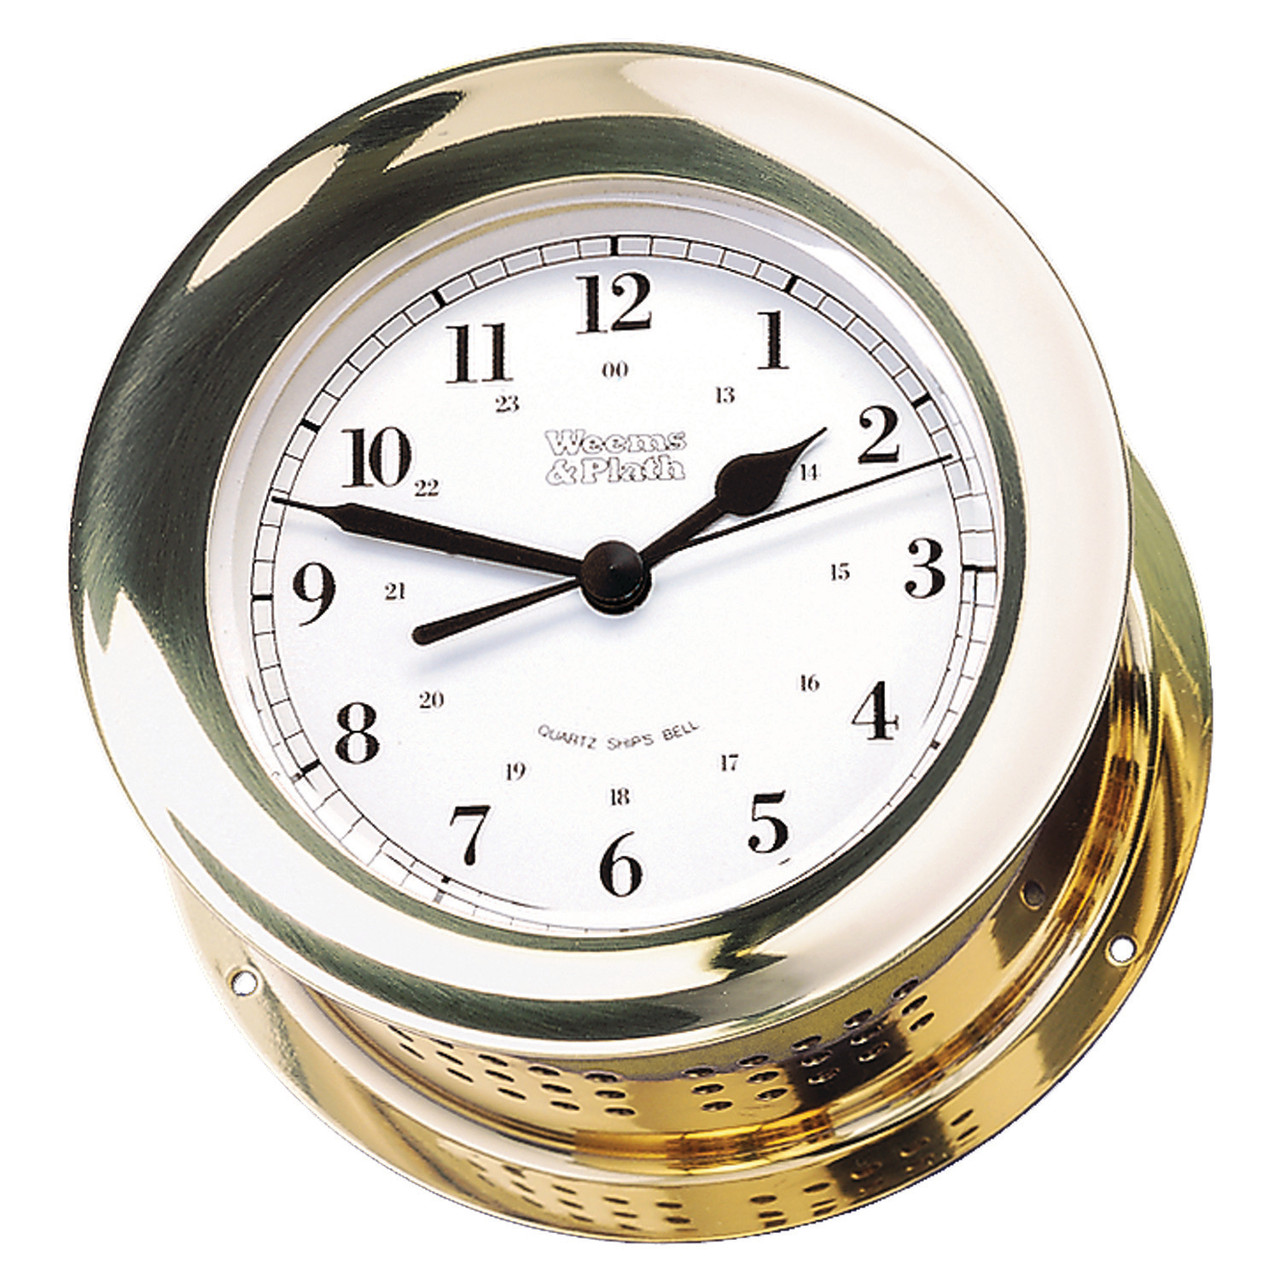 Atlantis Quartz Clock (200500)